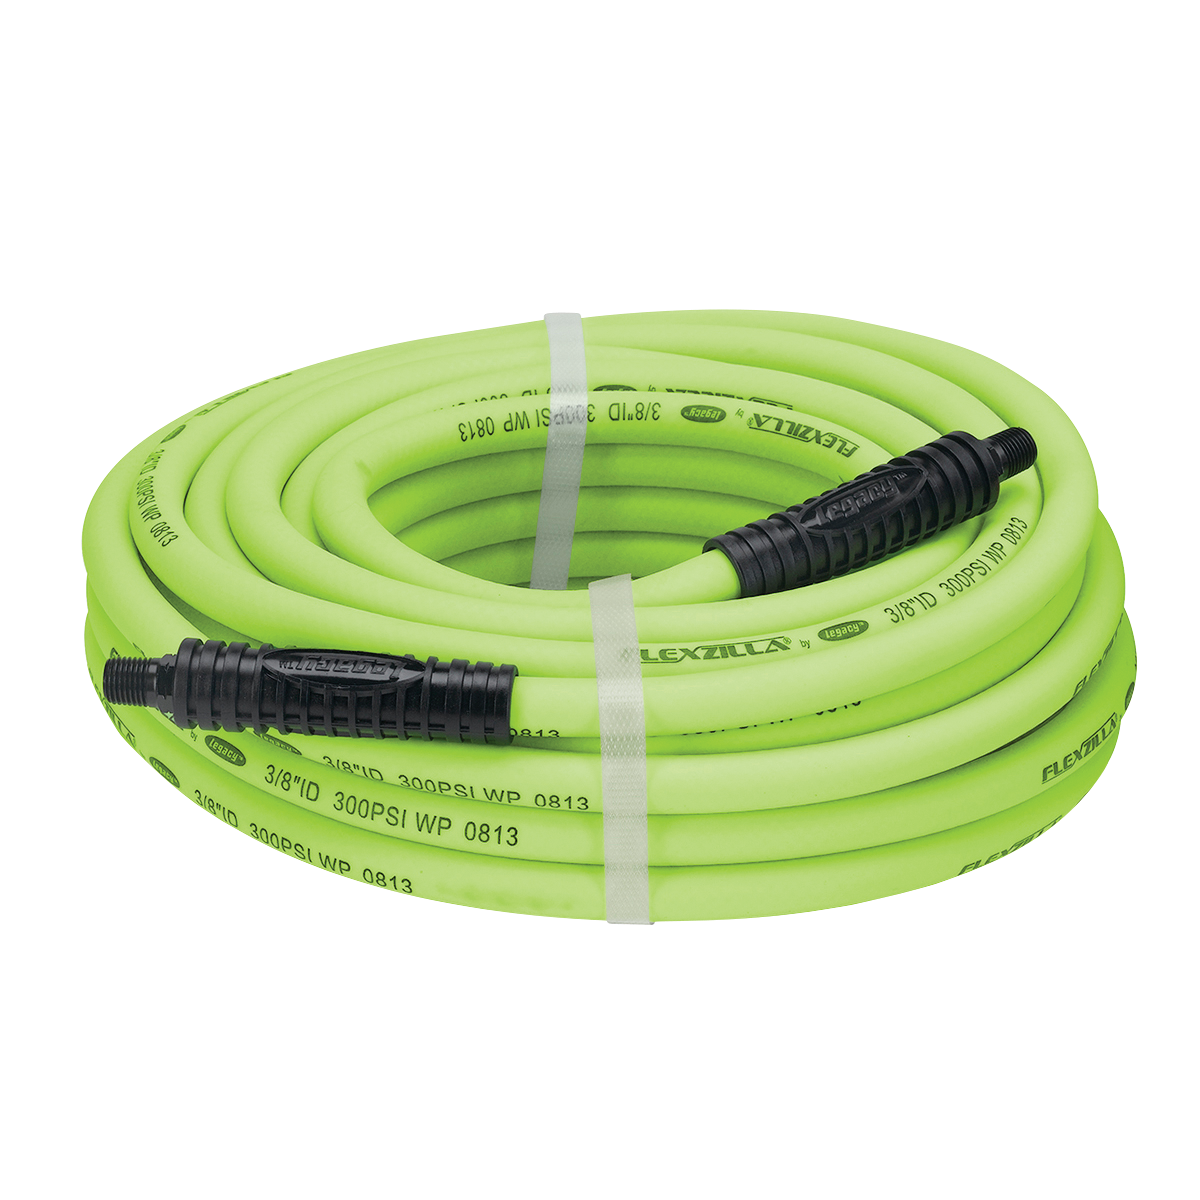 3/8in. X 50ft. Air Hose with 1/4in. MNPT Ends